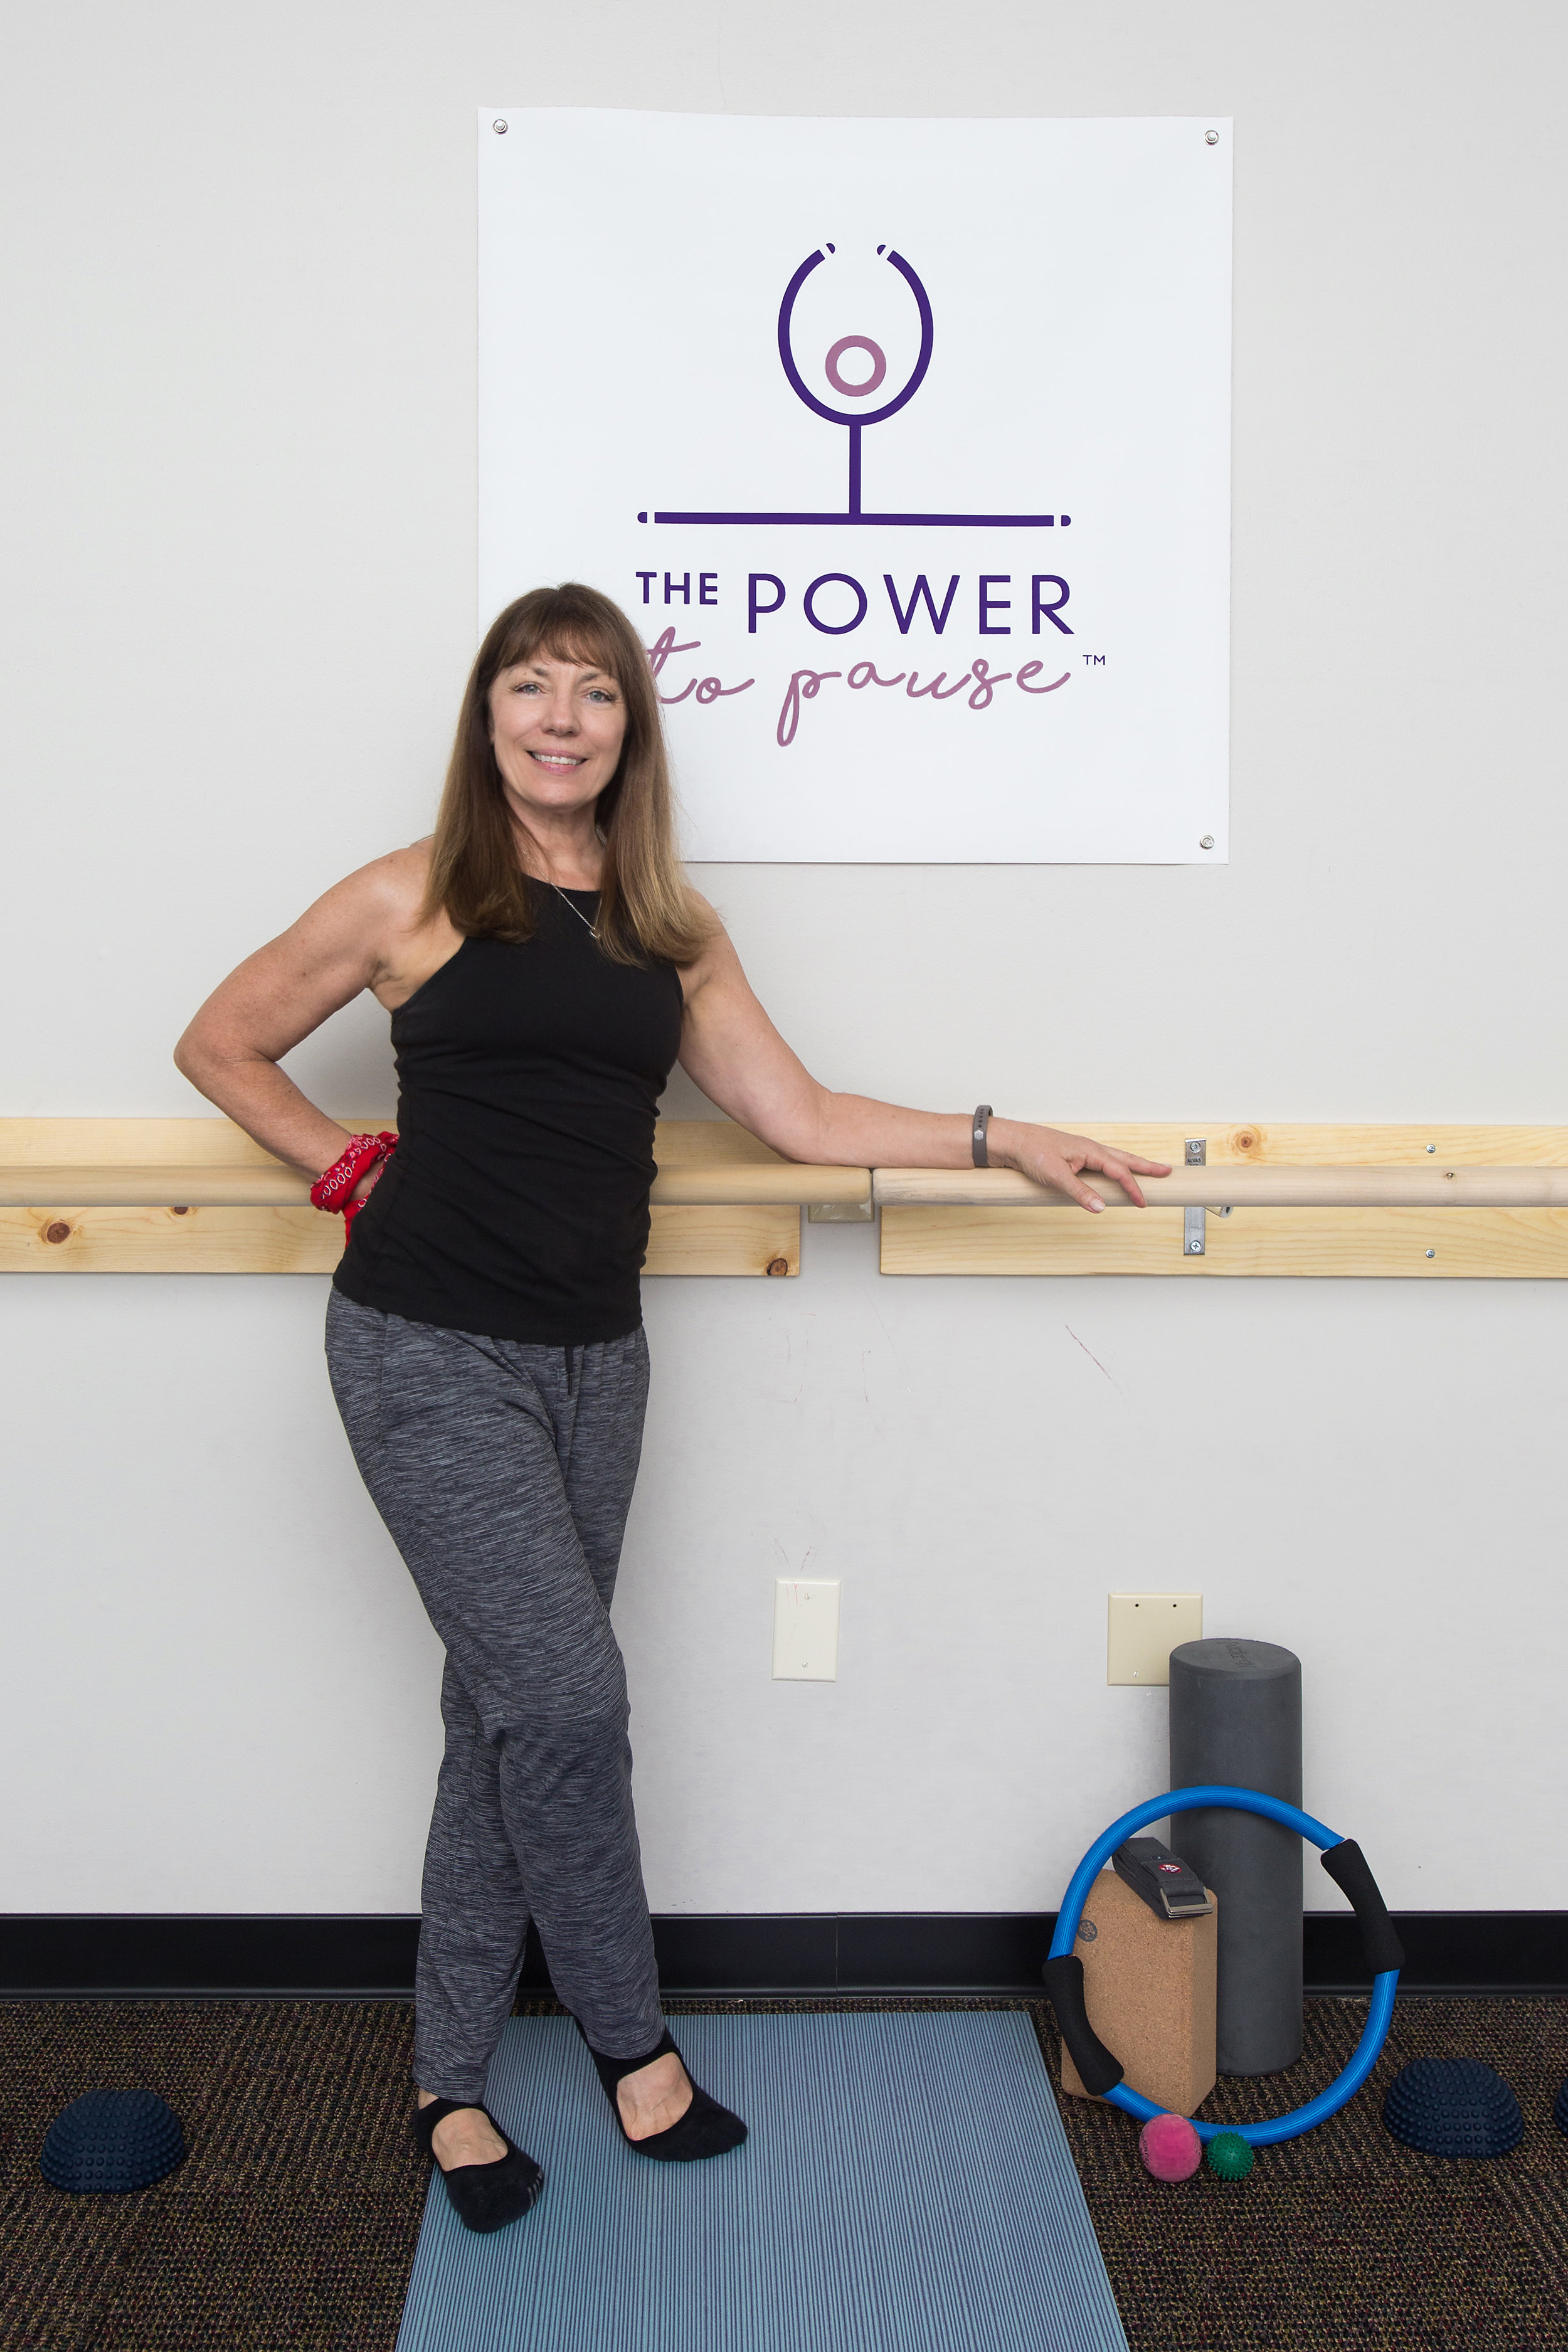 Meet Your Assisting Stretching Coach - My name is Connie C. Williams, and I'm a 40-year fitness industry leader and your Assisted Stretching coach.I co-created step/bench aerobics in the late 1980s, producing videos and traveling the world training instructors, corporate clients, and personal trainers—including Princess Diana's personal trainer!I can't wait to share my passion for Assisted Stretching with you through The Power to Pause's online resources and wellness education!